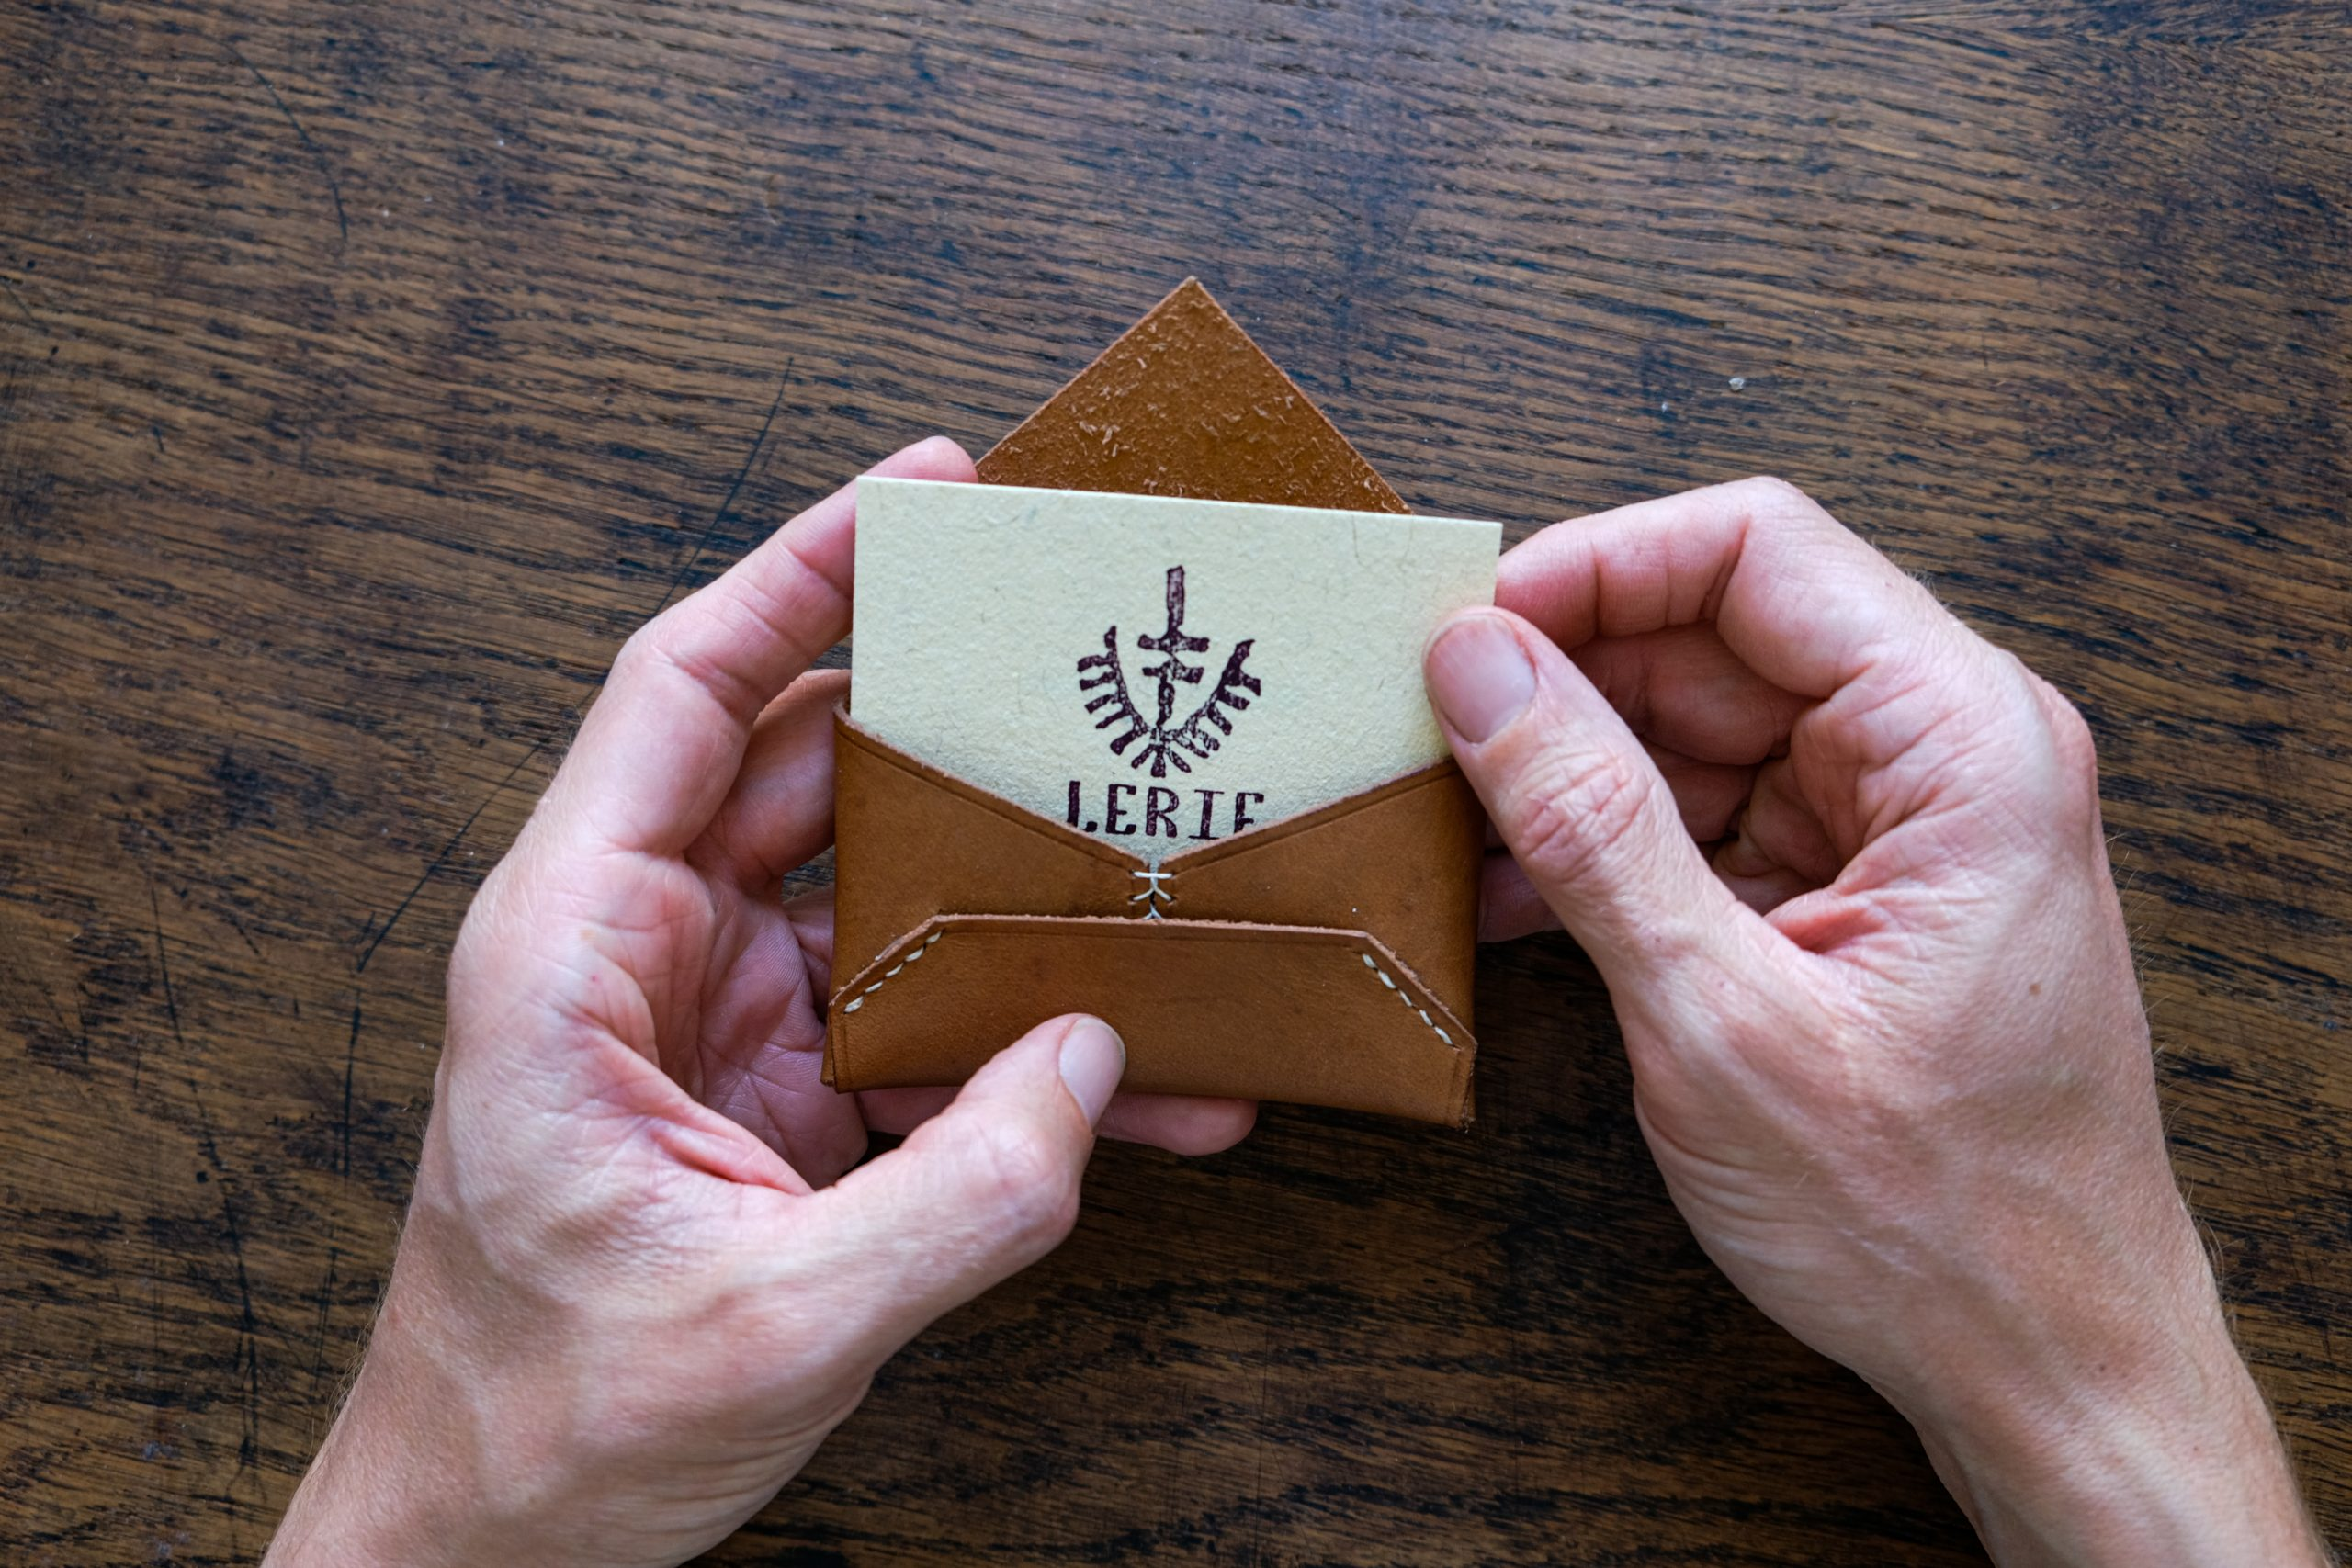 lerif designs leather airmail business card holder in walnut on wood background with brand business card inside